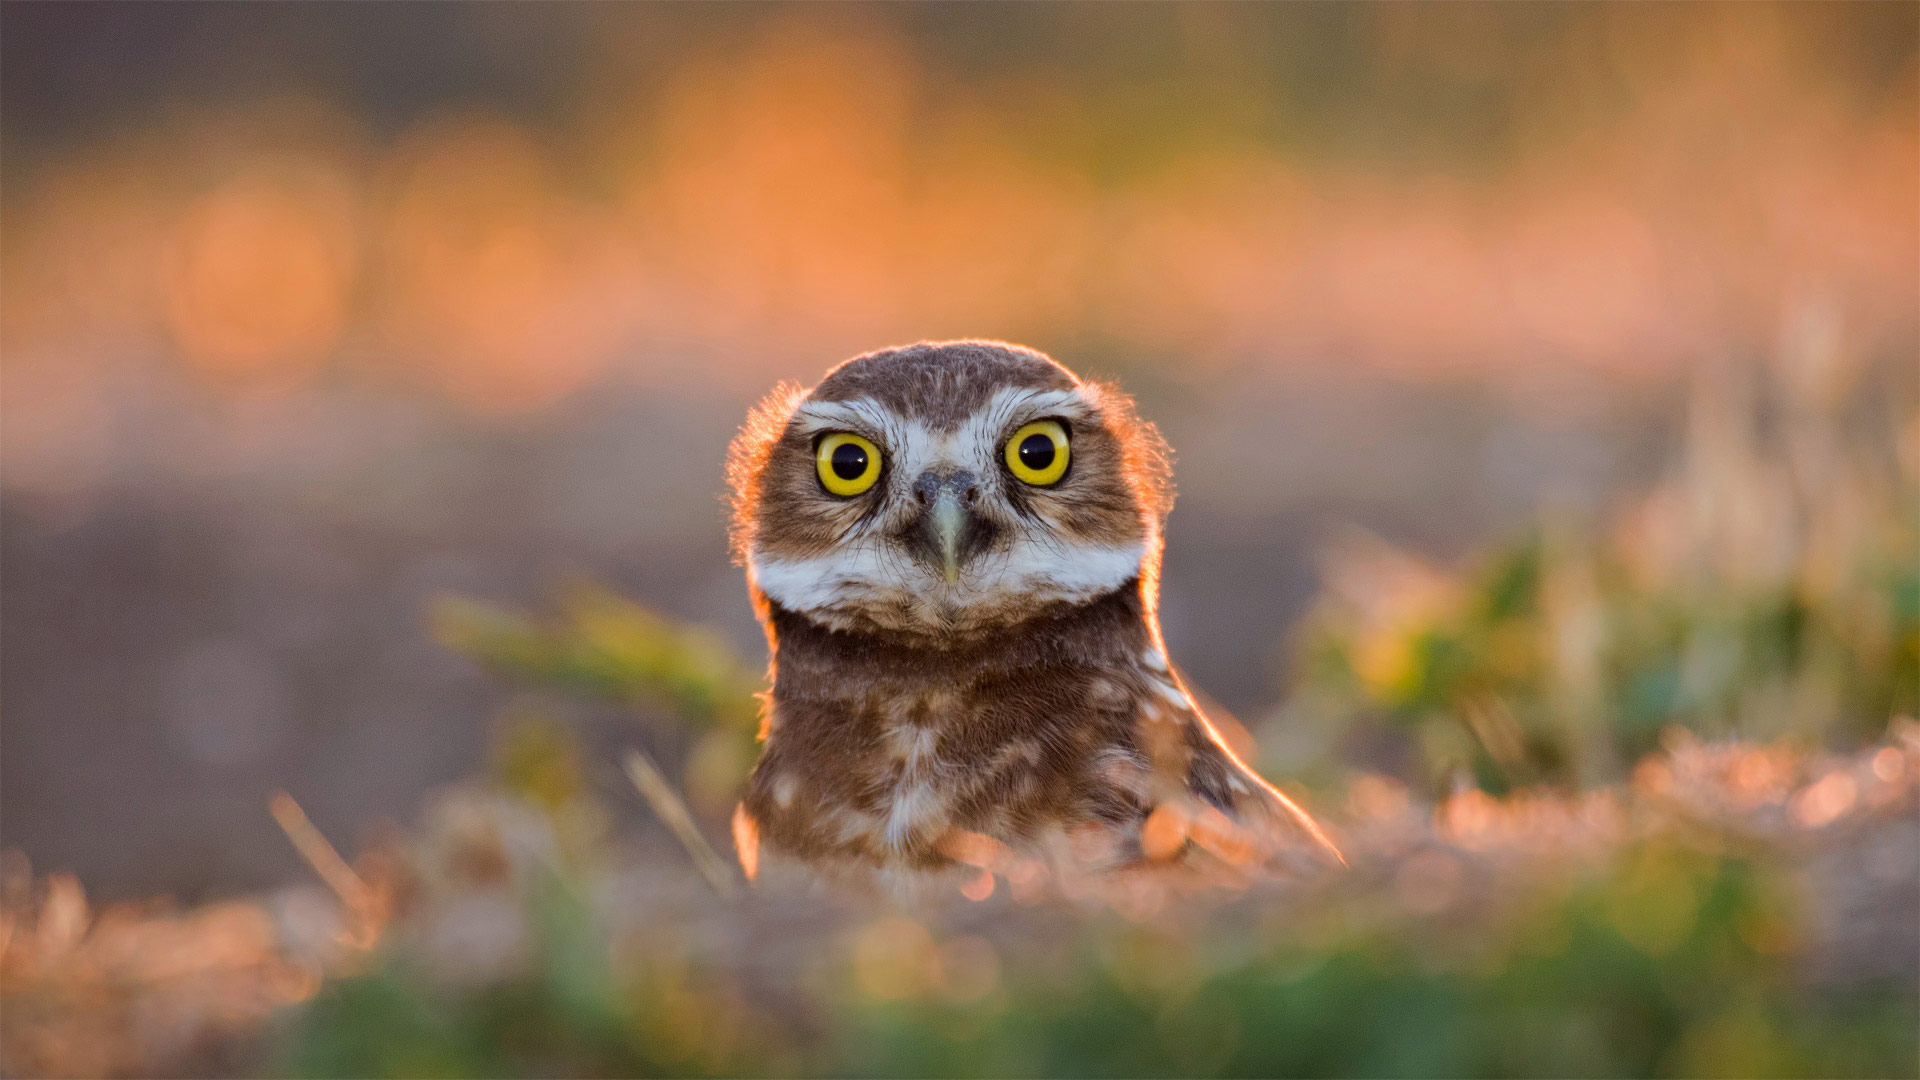 burrowing owl : Here's looking at you